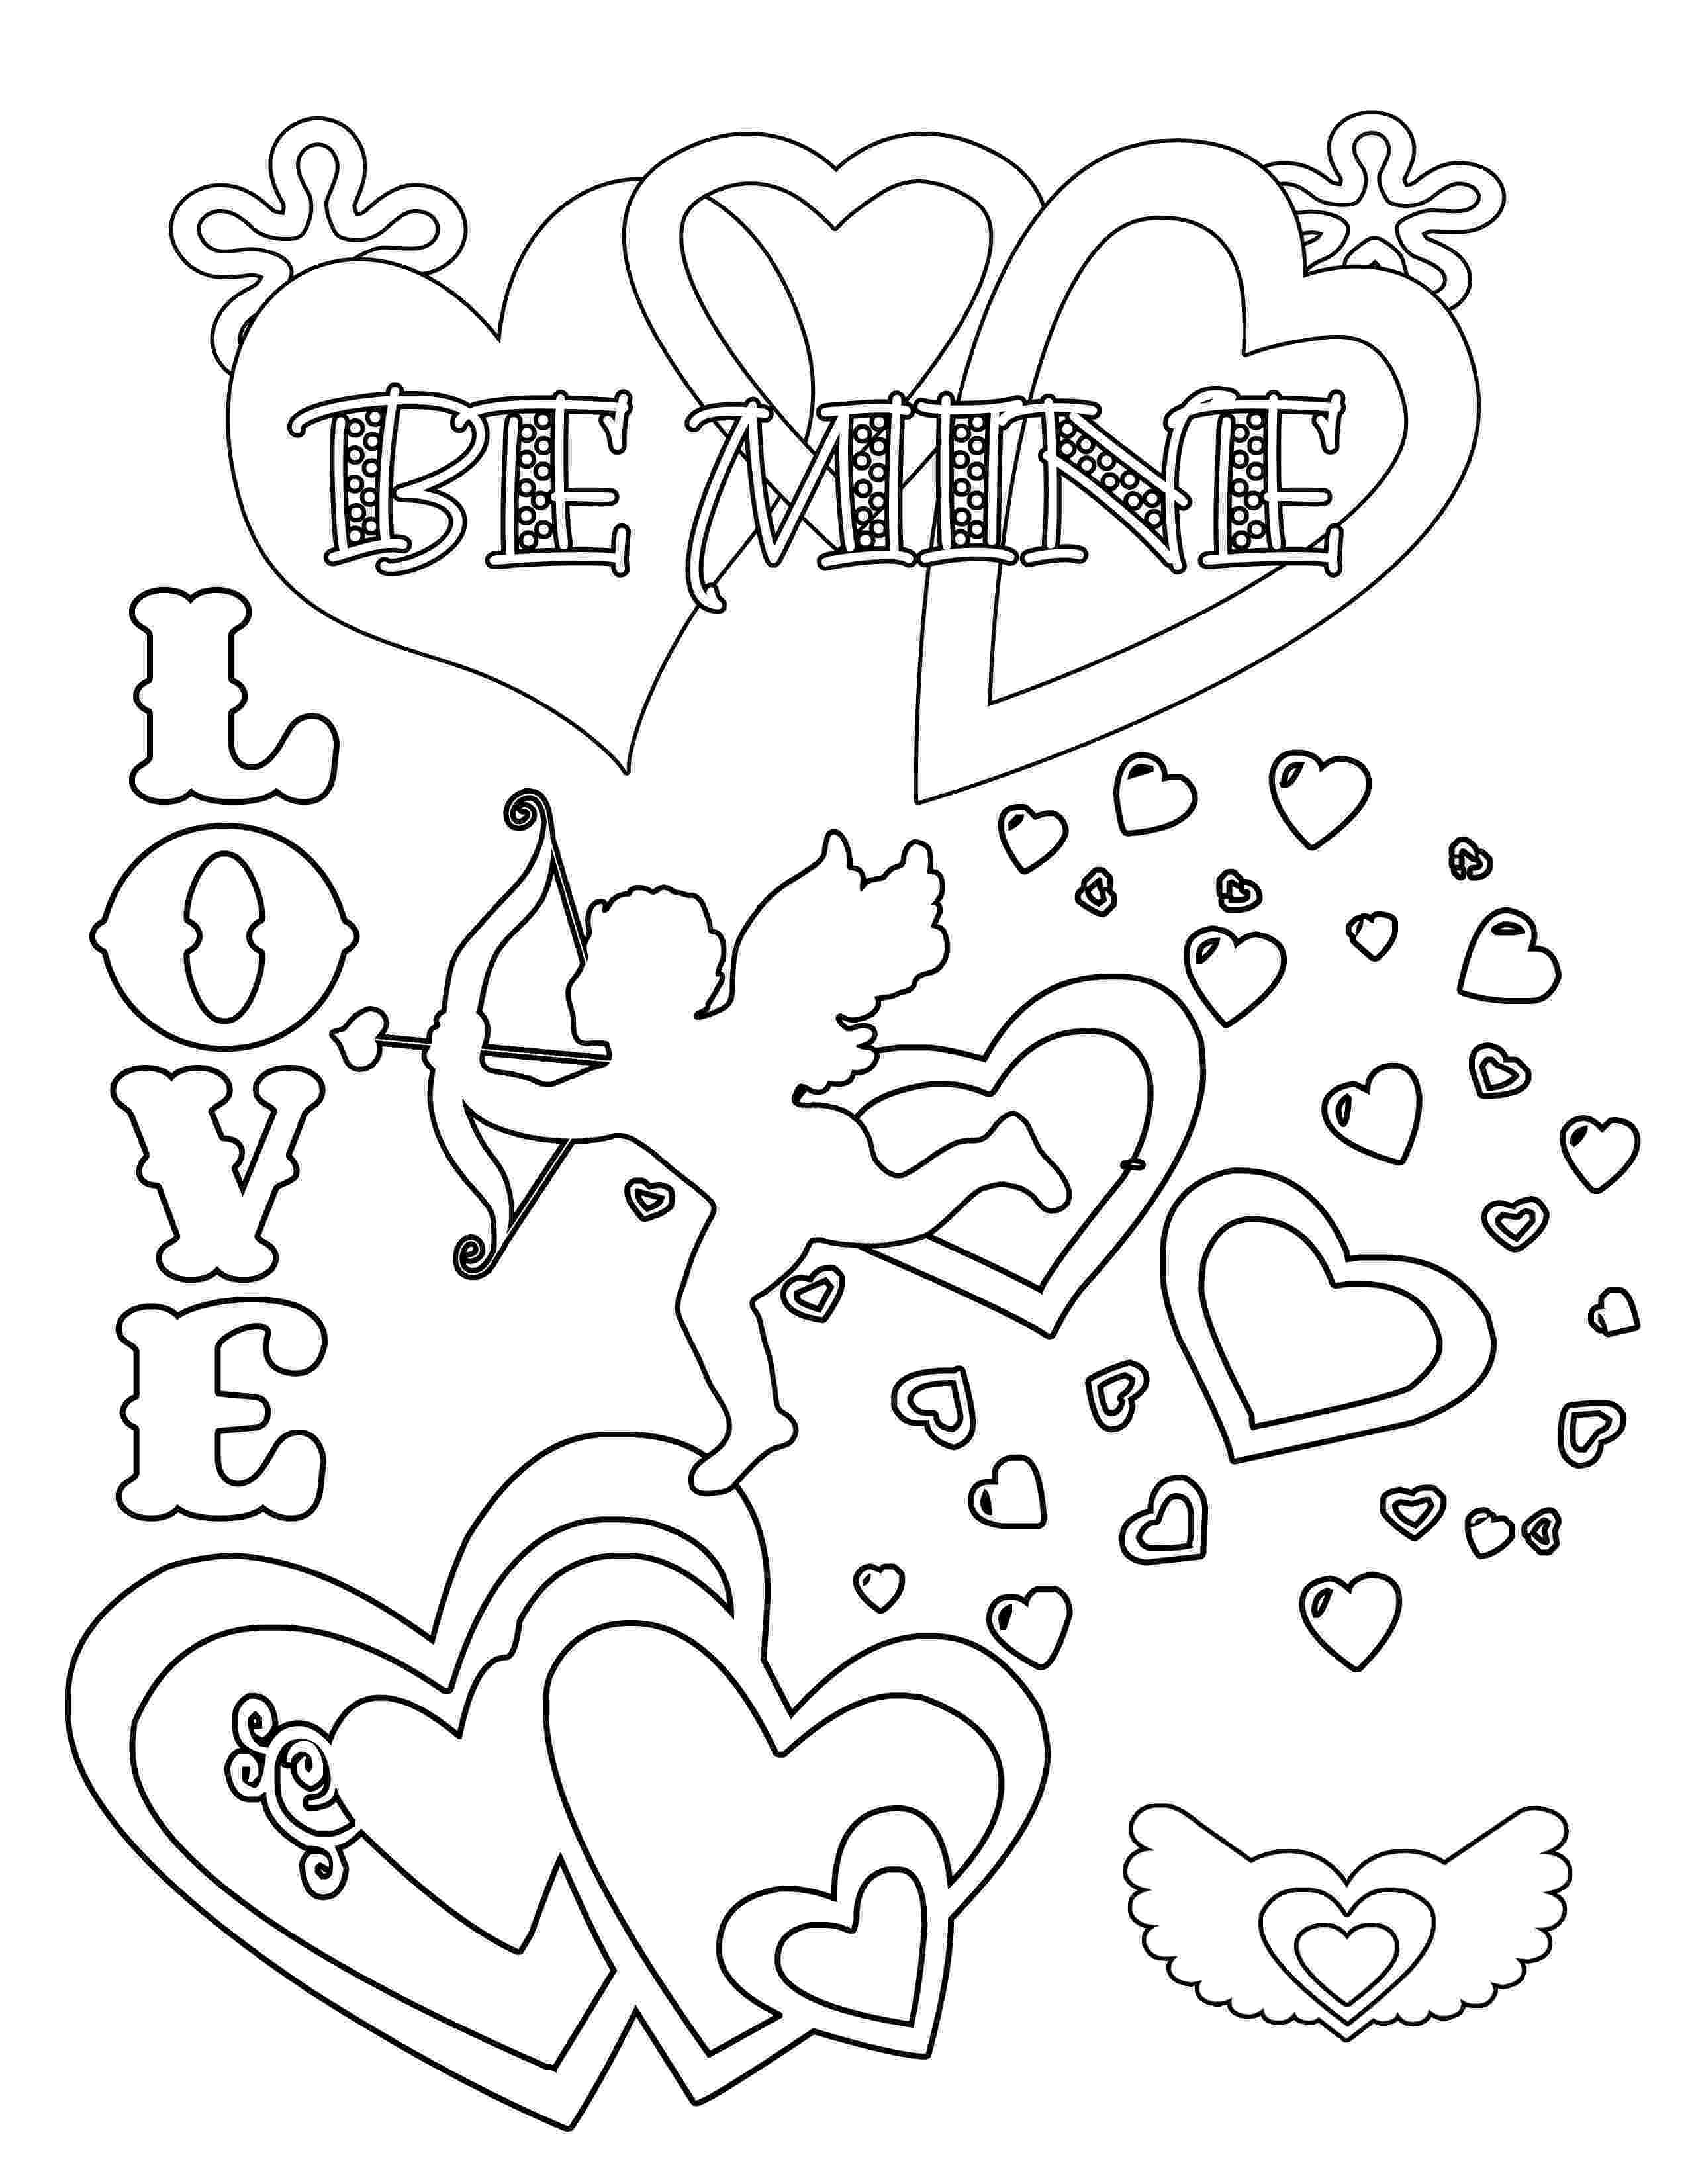 valentines pictures to color valentine coloring pages best coloring pages for kids pictures valentines to color